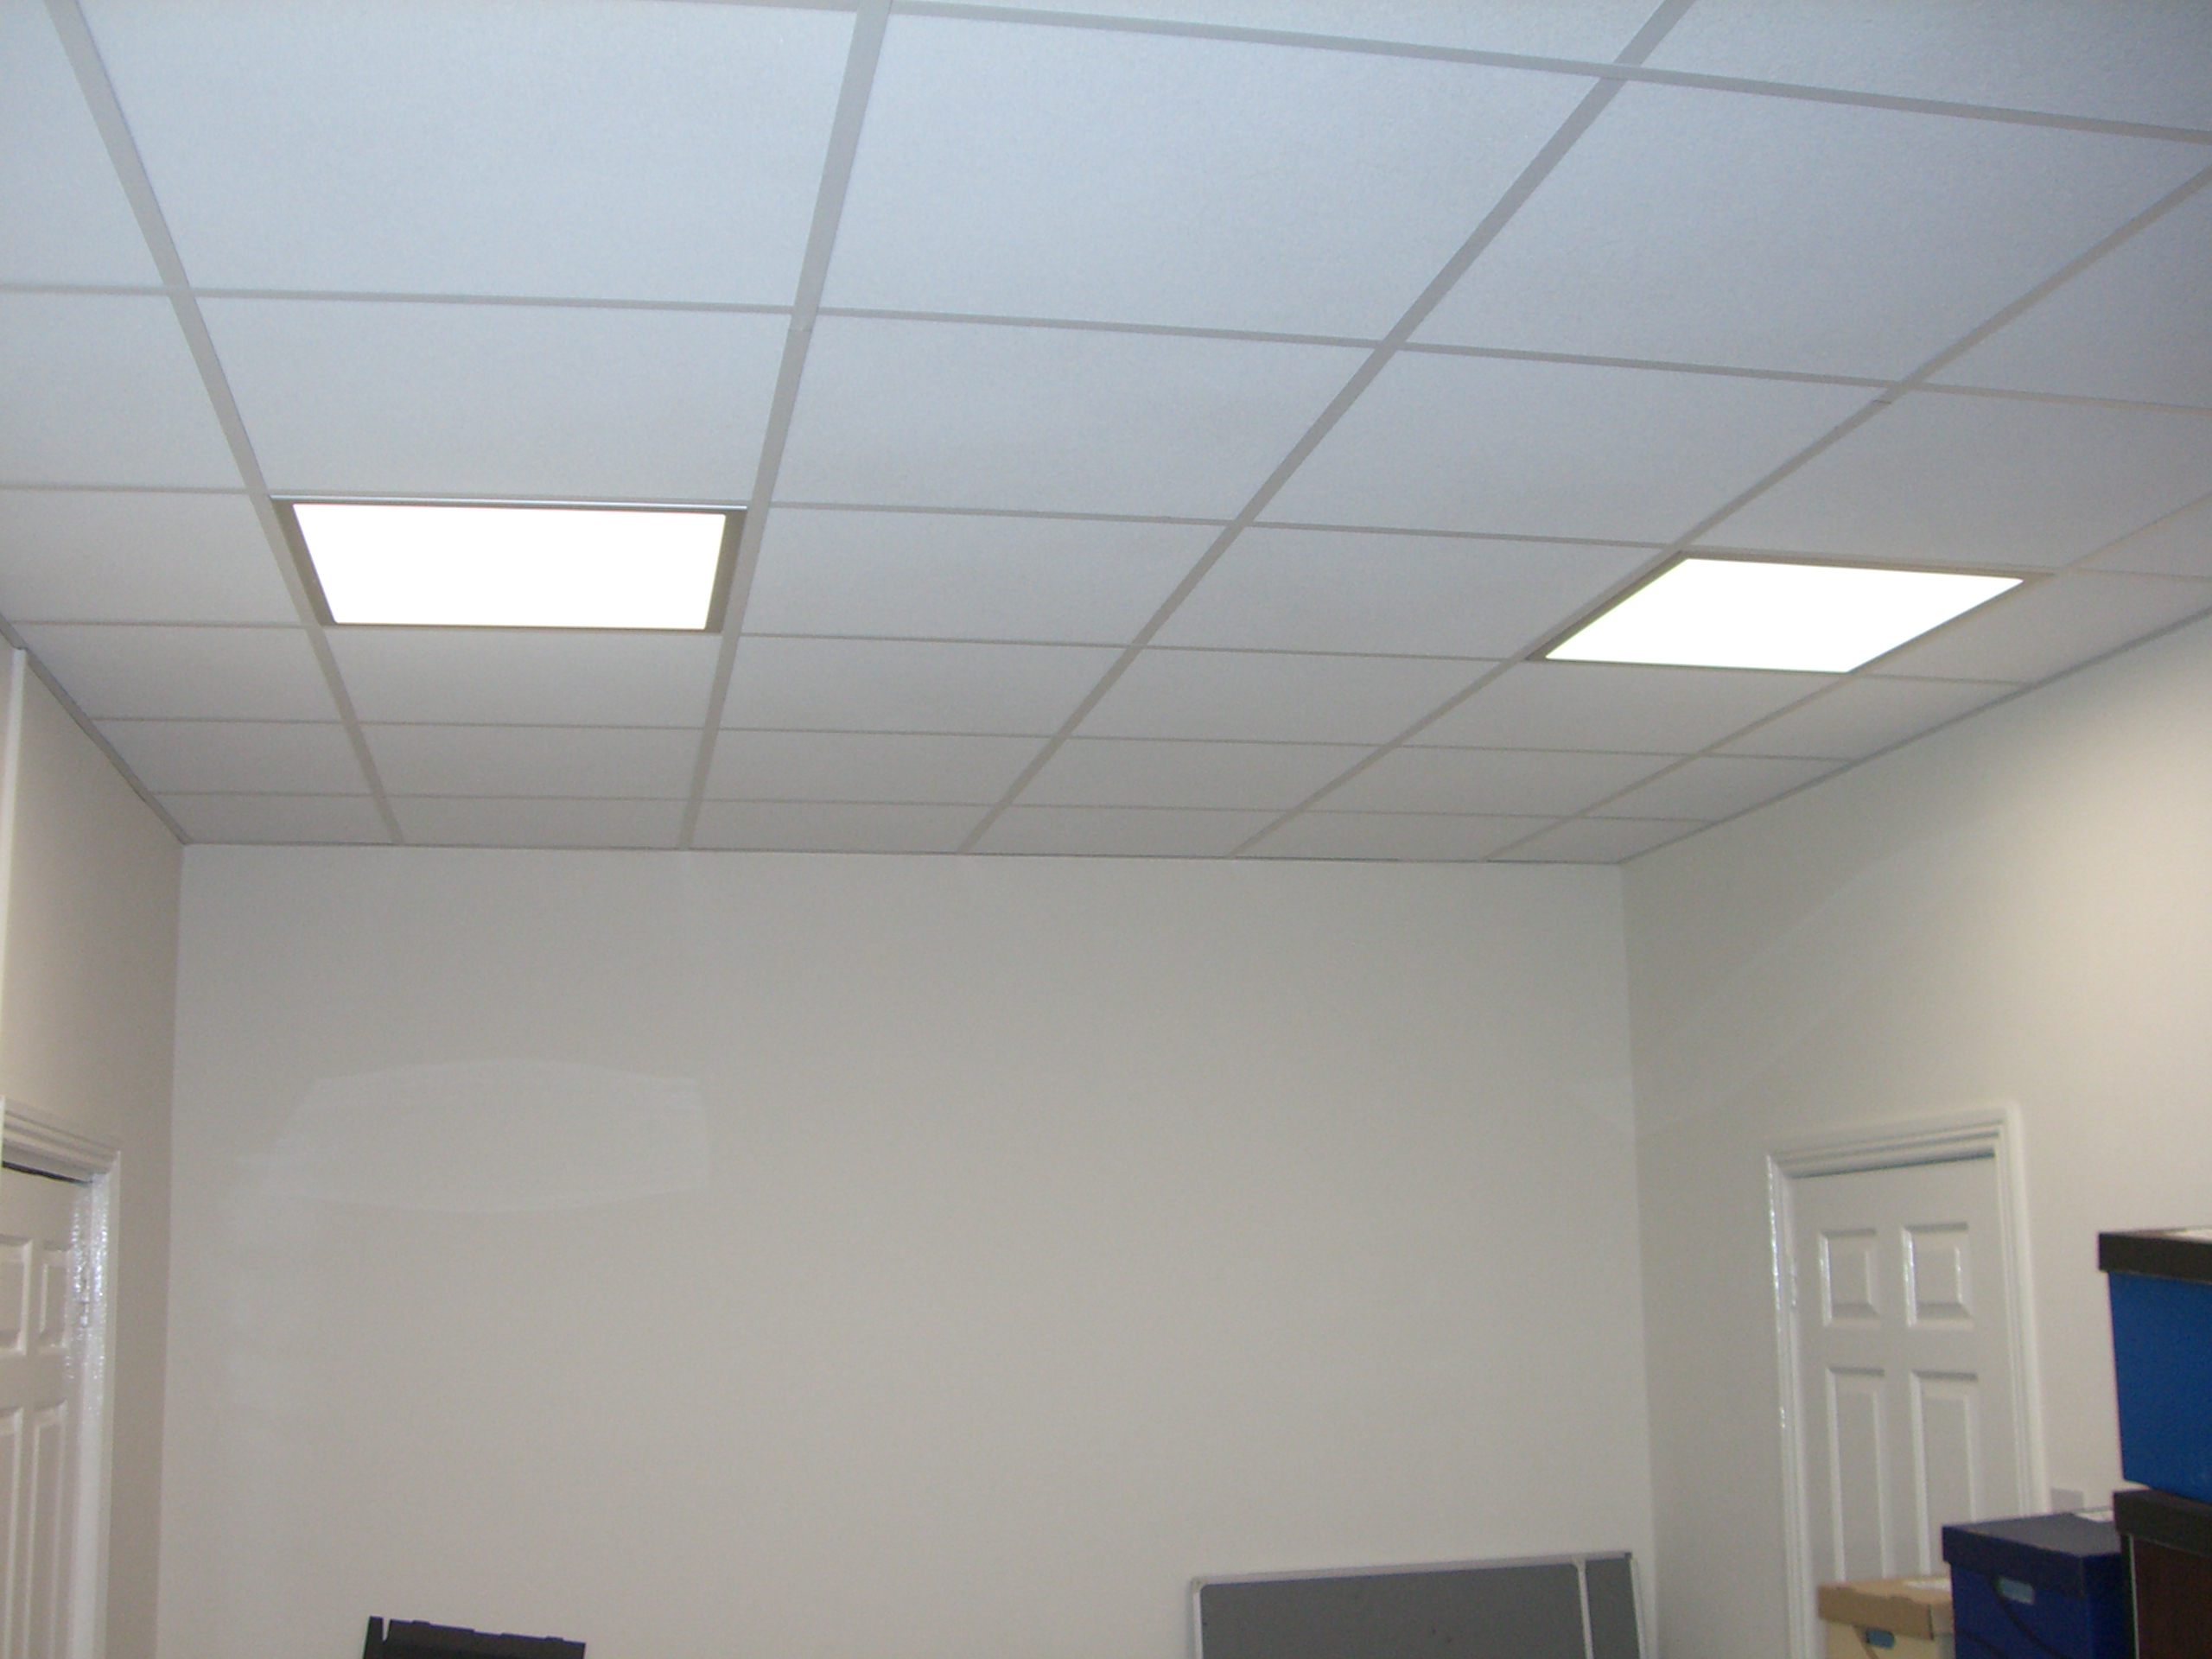 Suspended Ceilings : Ceilings, Dublin : SureHome.ie Building Contractors Dublin, Kildare and ...